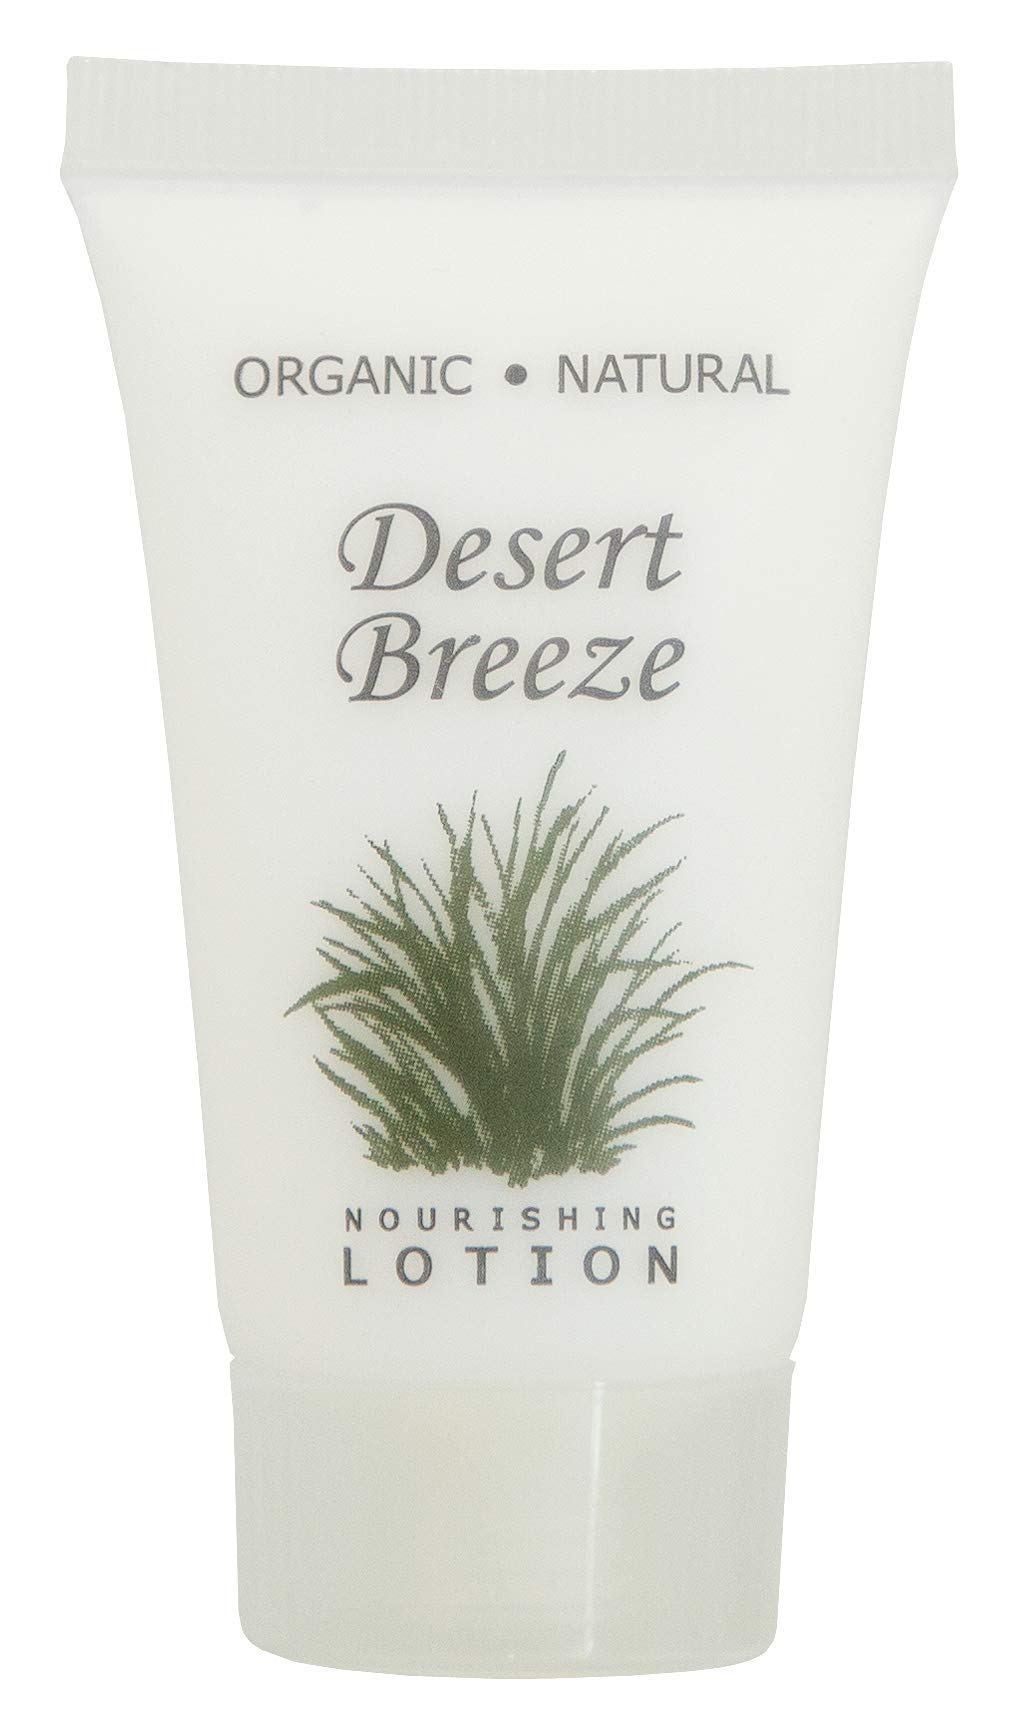 Desert Breeze Lotion, Travel Size Hotel Amenities, 1 oz (Case of 50)